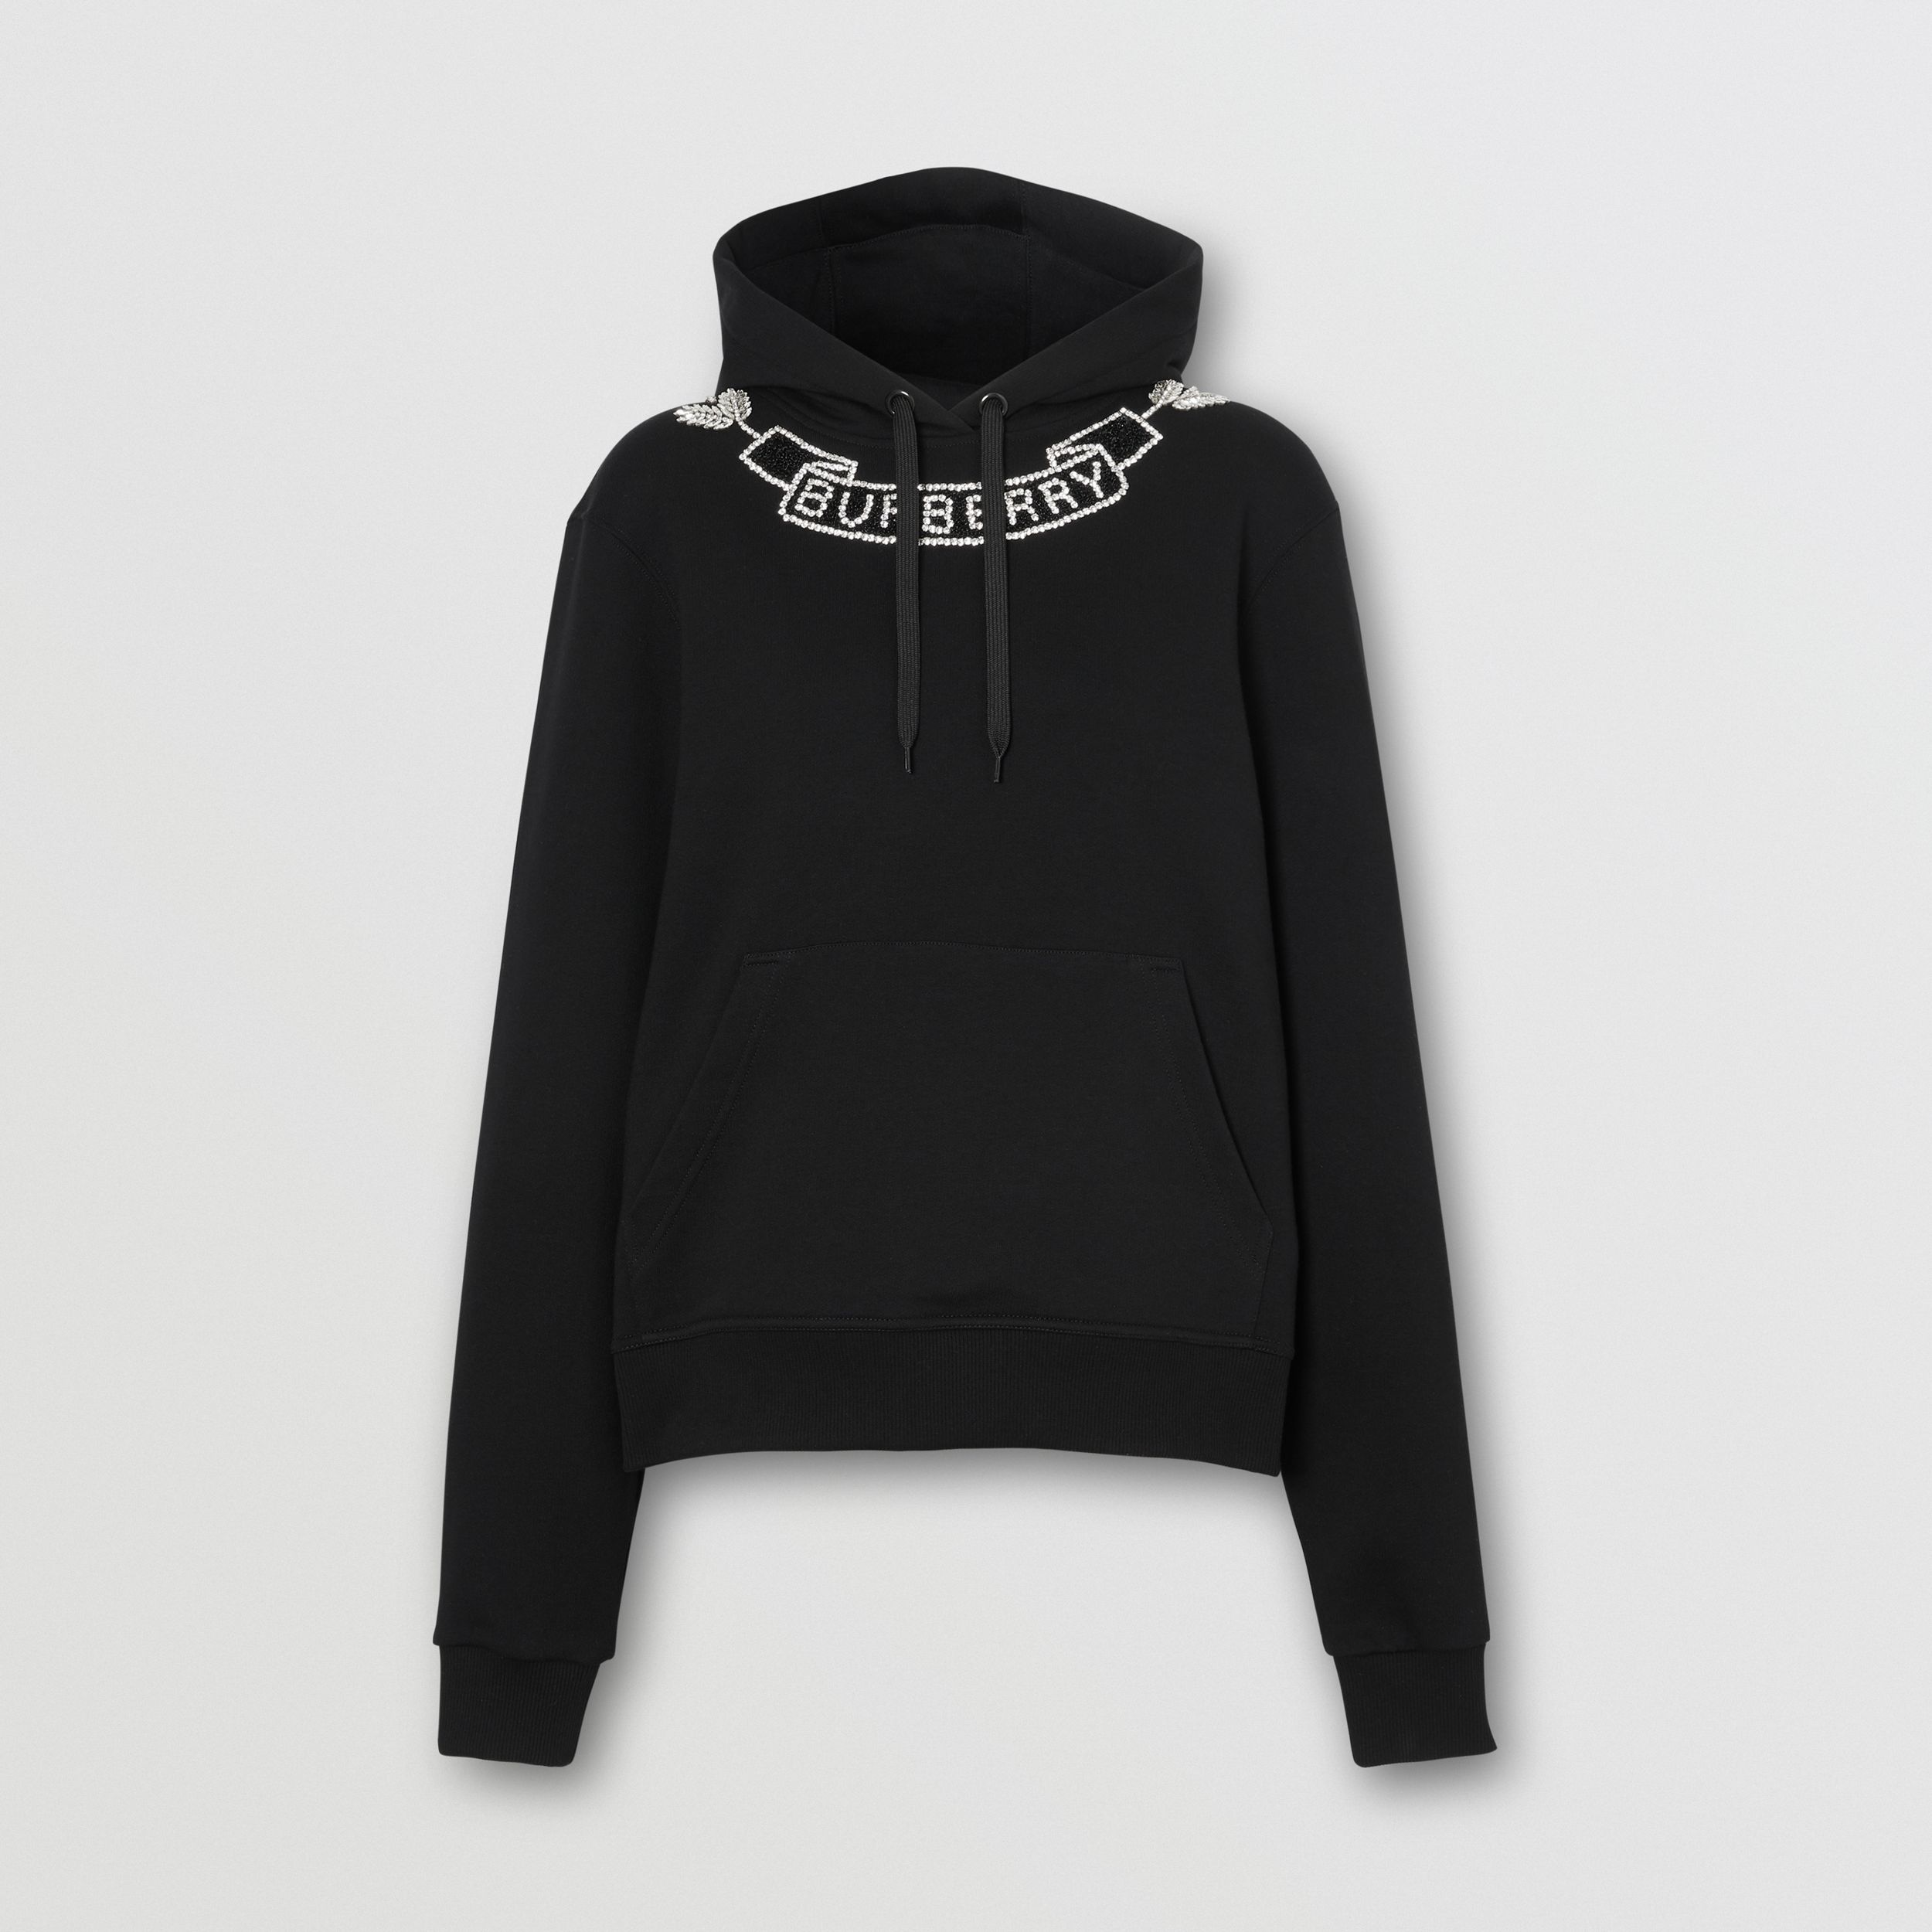 Embellished Cotton Oversized Hoodie in Black - Women | Burberry Hong Kong S.A.R - 4